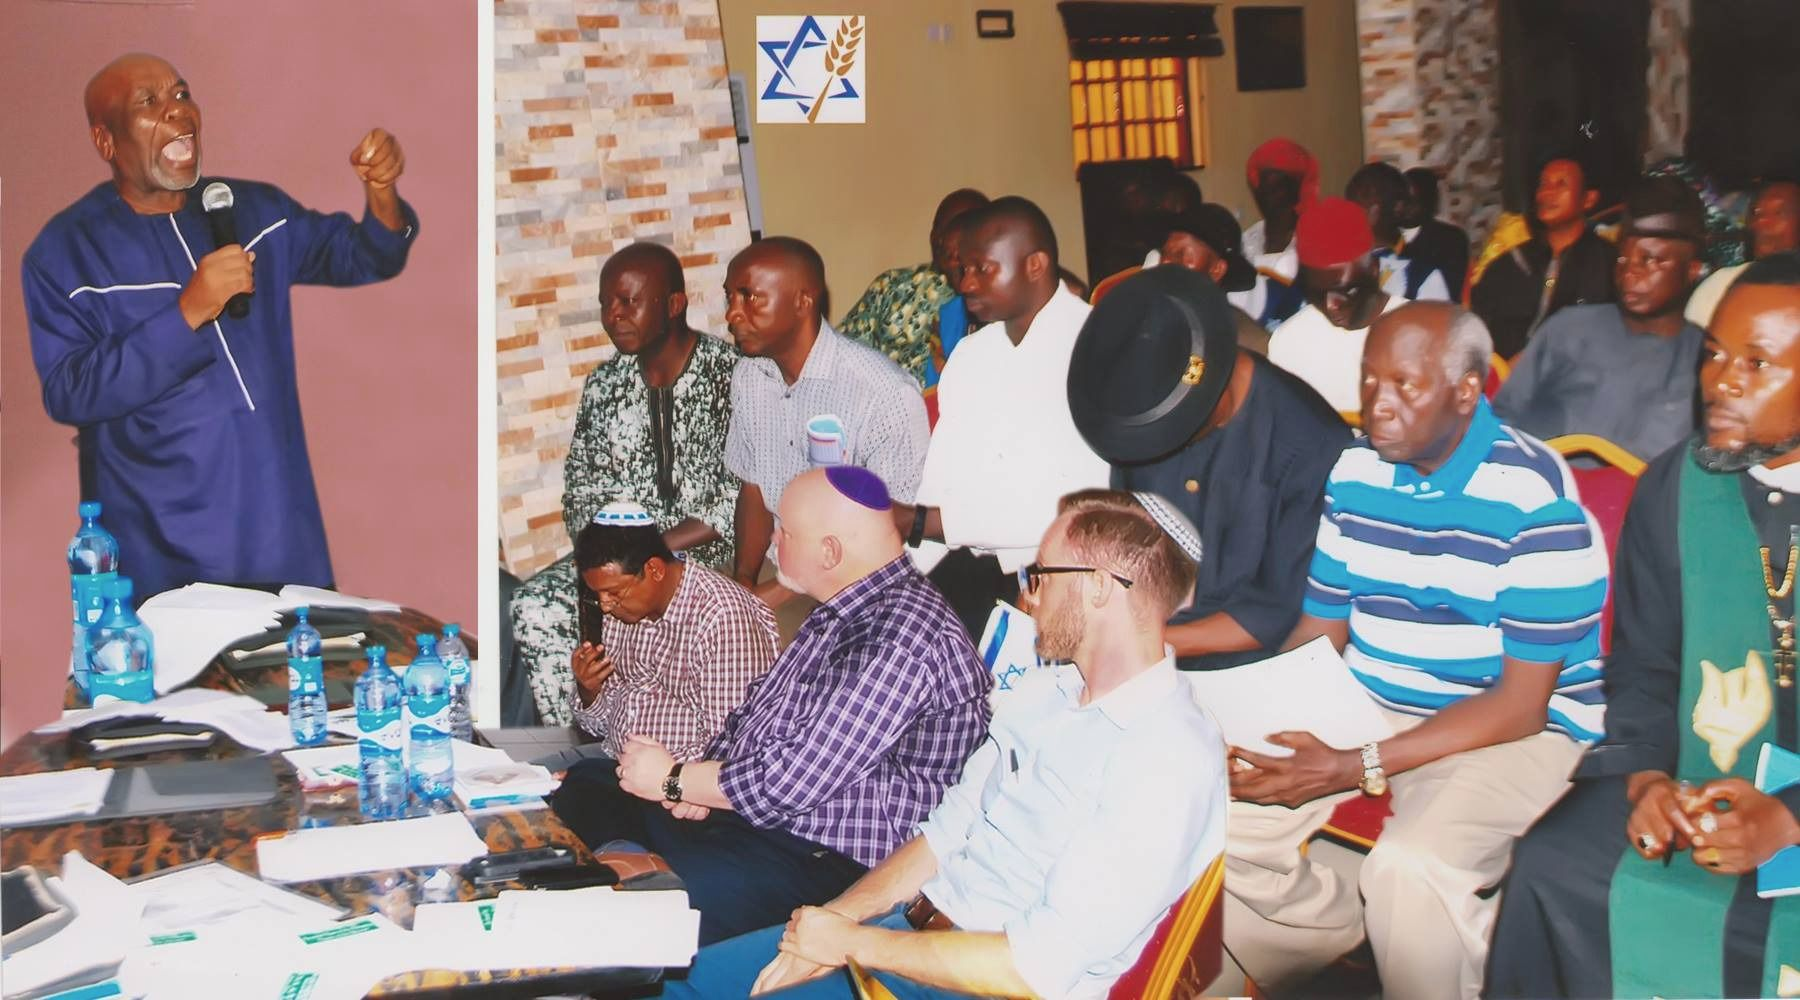 Onwukwe Alaezi, standing, presents to a group of Igbo and visitors from Jewish Voice Ministries. Alaezi is part of an organization of Nigerian academics who promote the Israelite origin story of the Igbo.